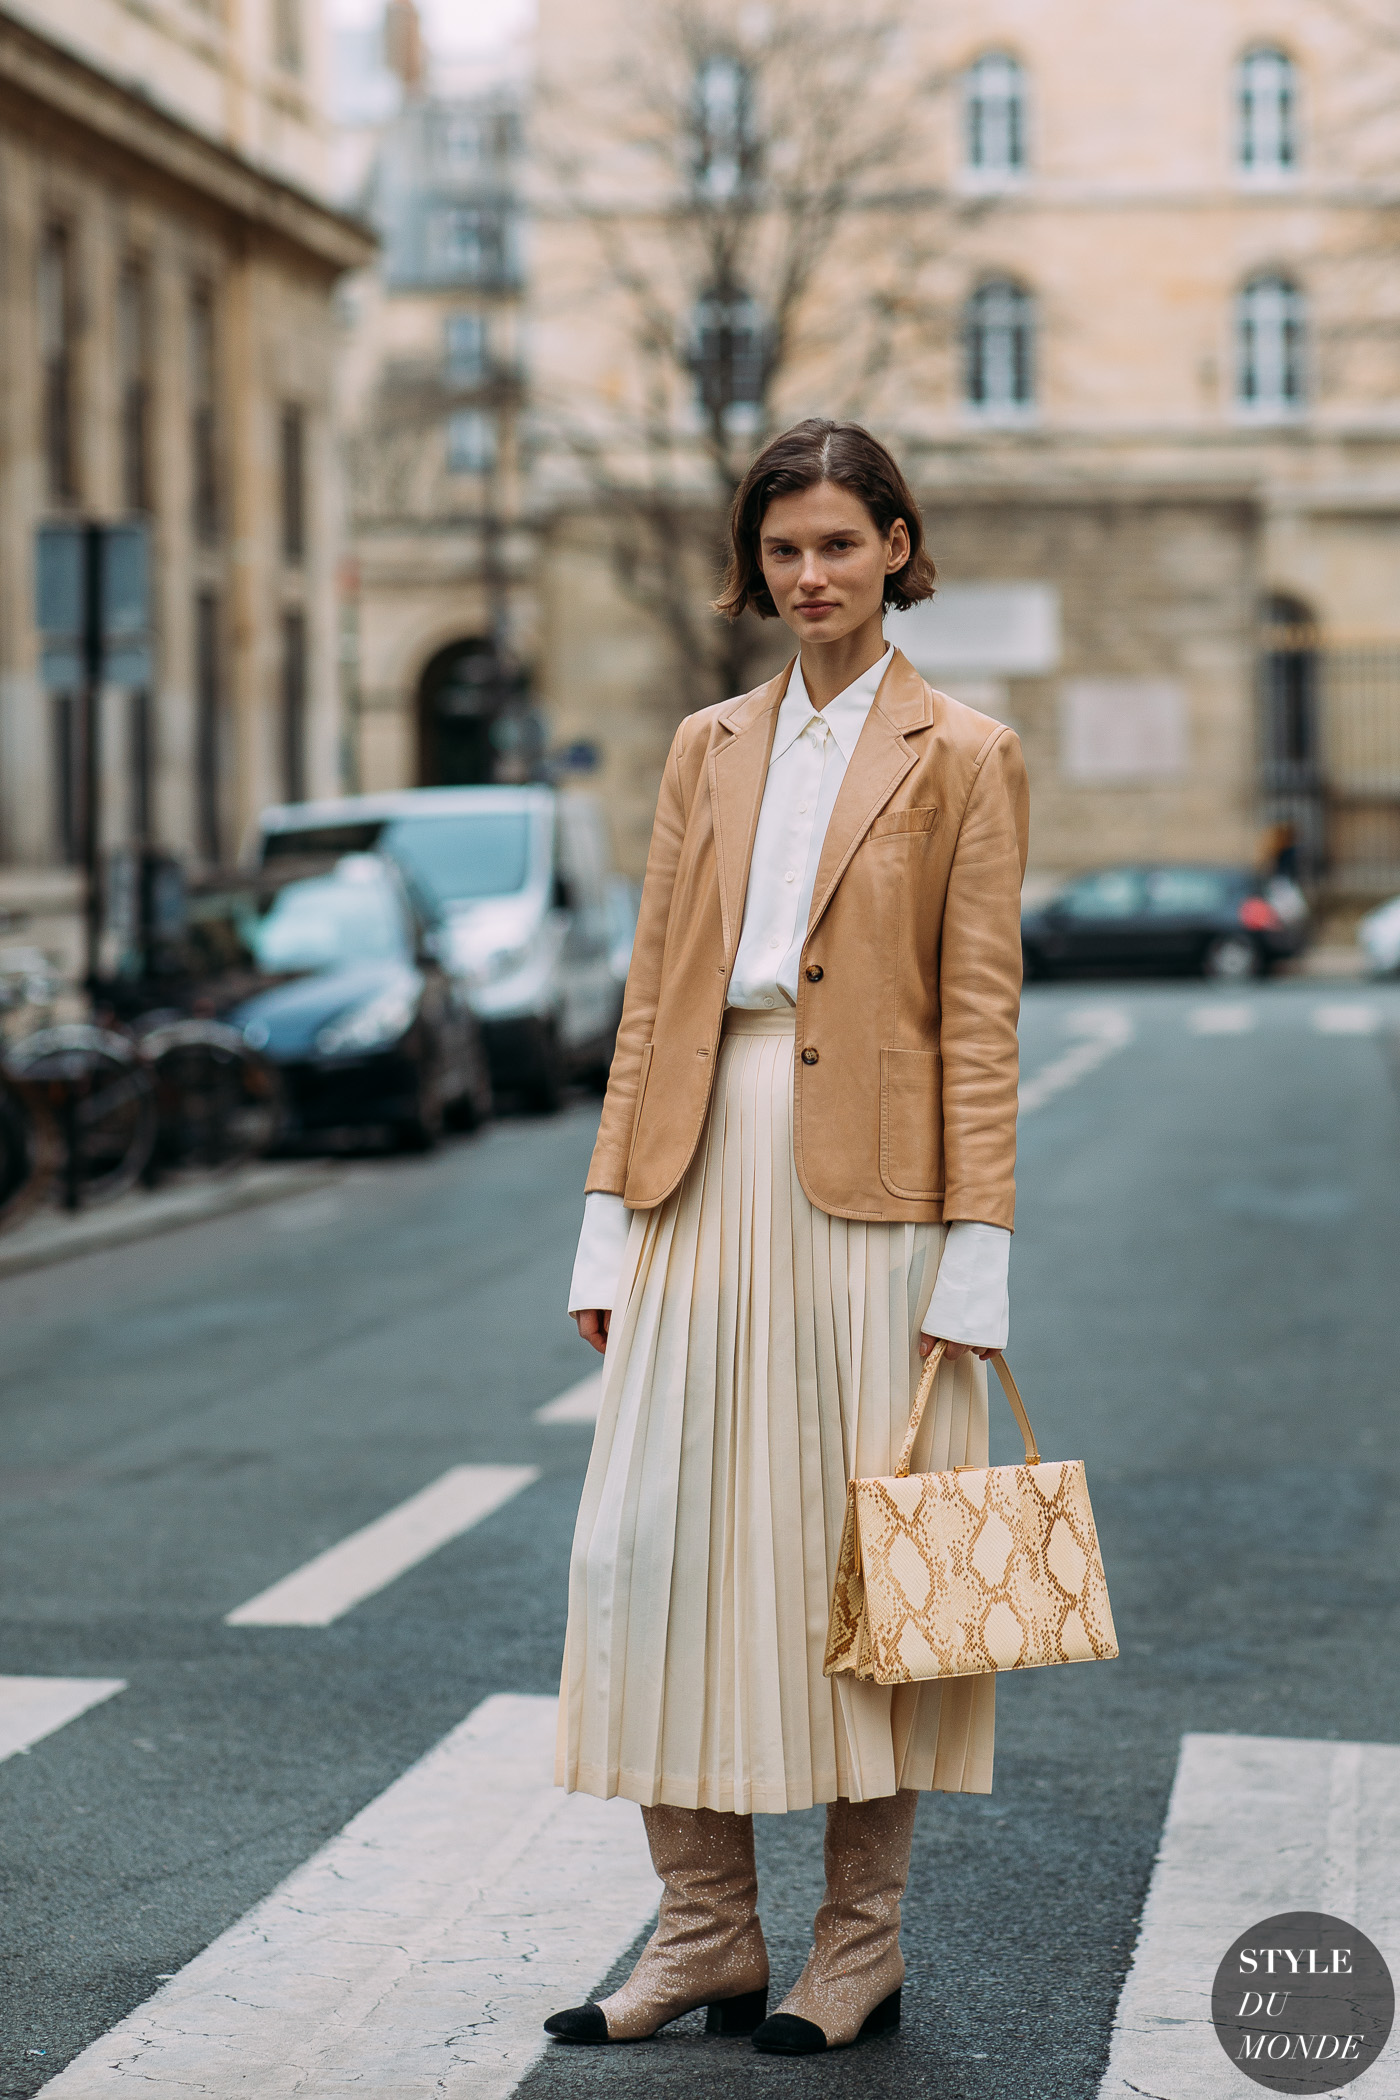 Giedre Dukauskaite by STYLEDUMONDE Street Style Fashion Photography FW18 20180305_48A8474